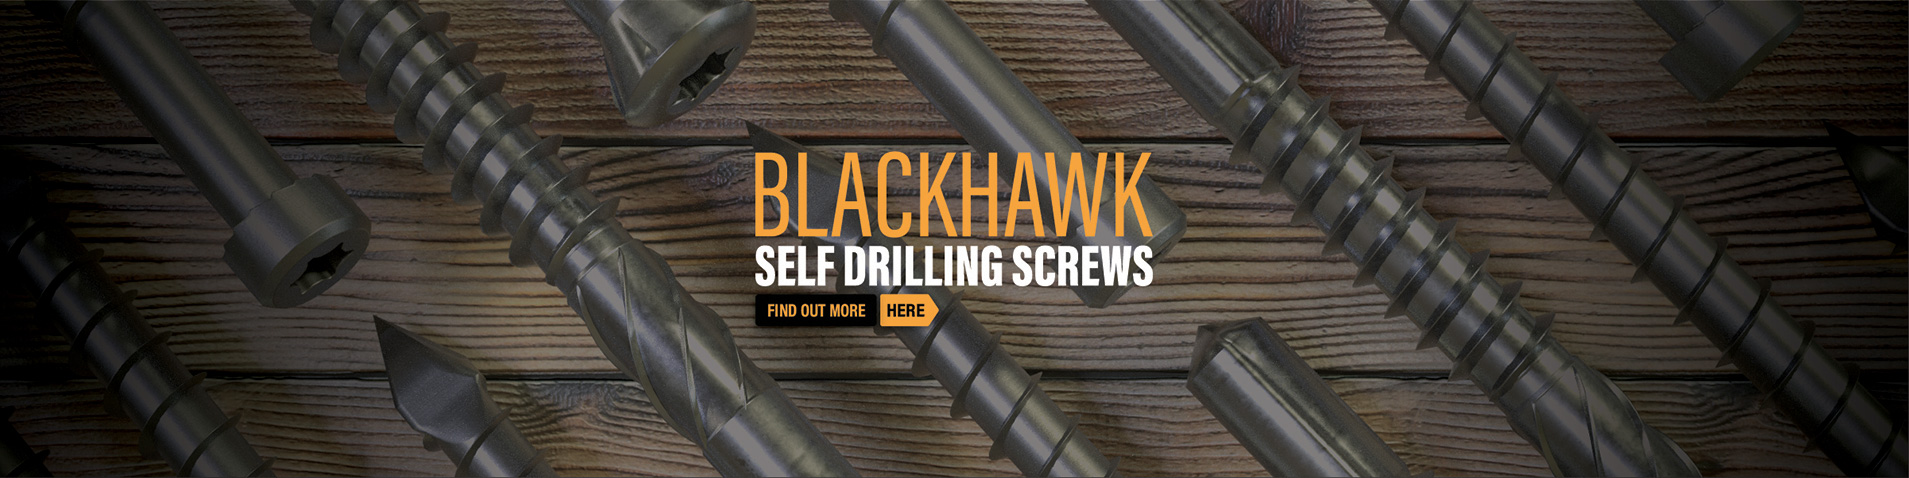 Blackhawk Self Drilling Screws